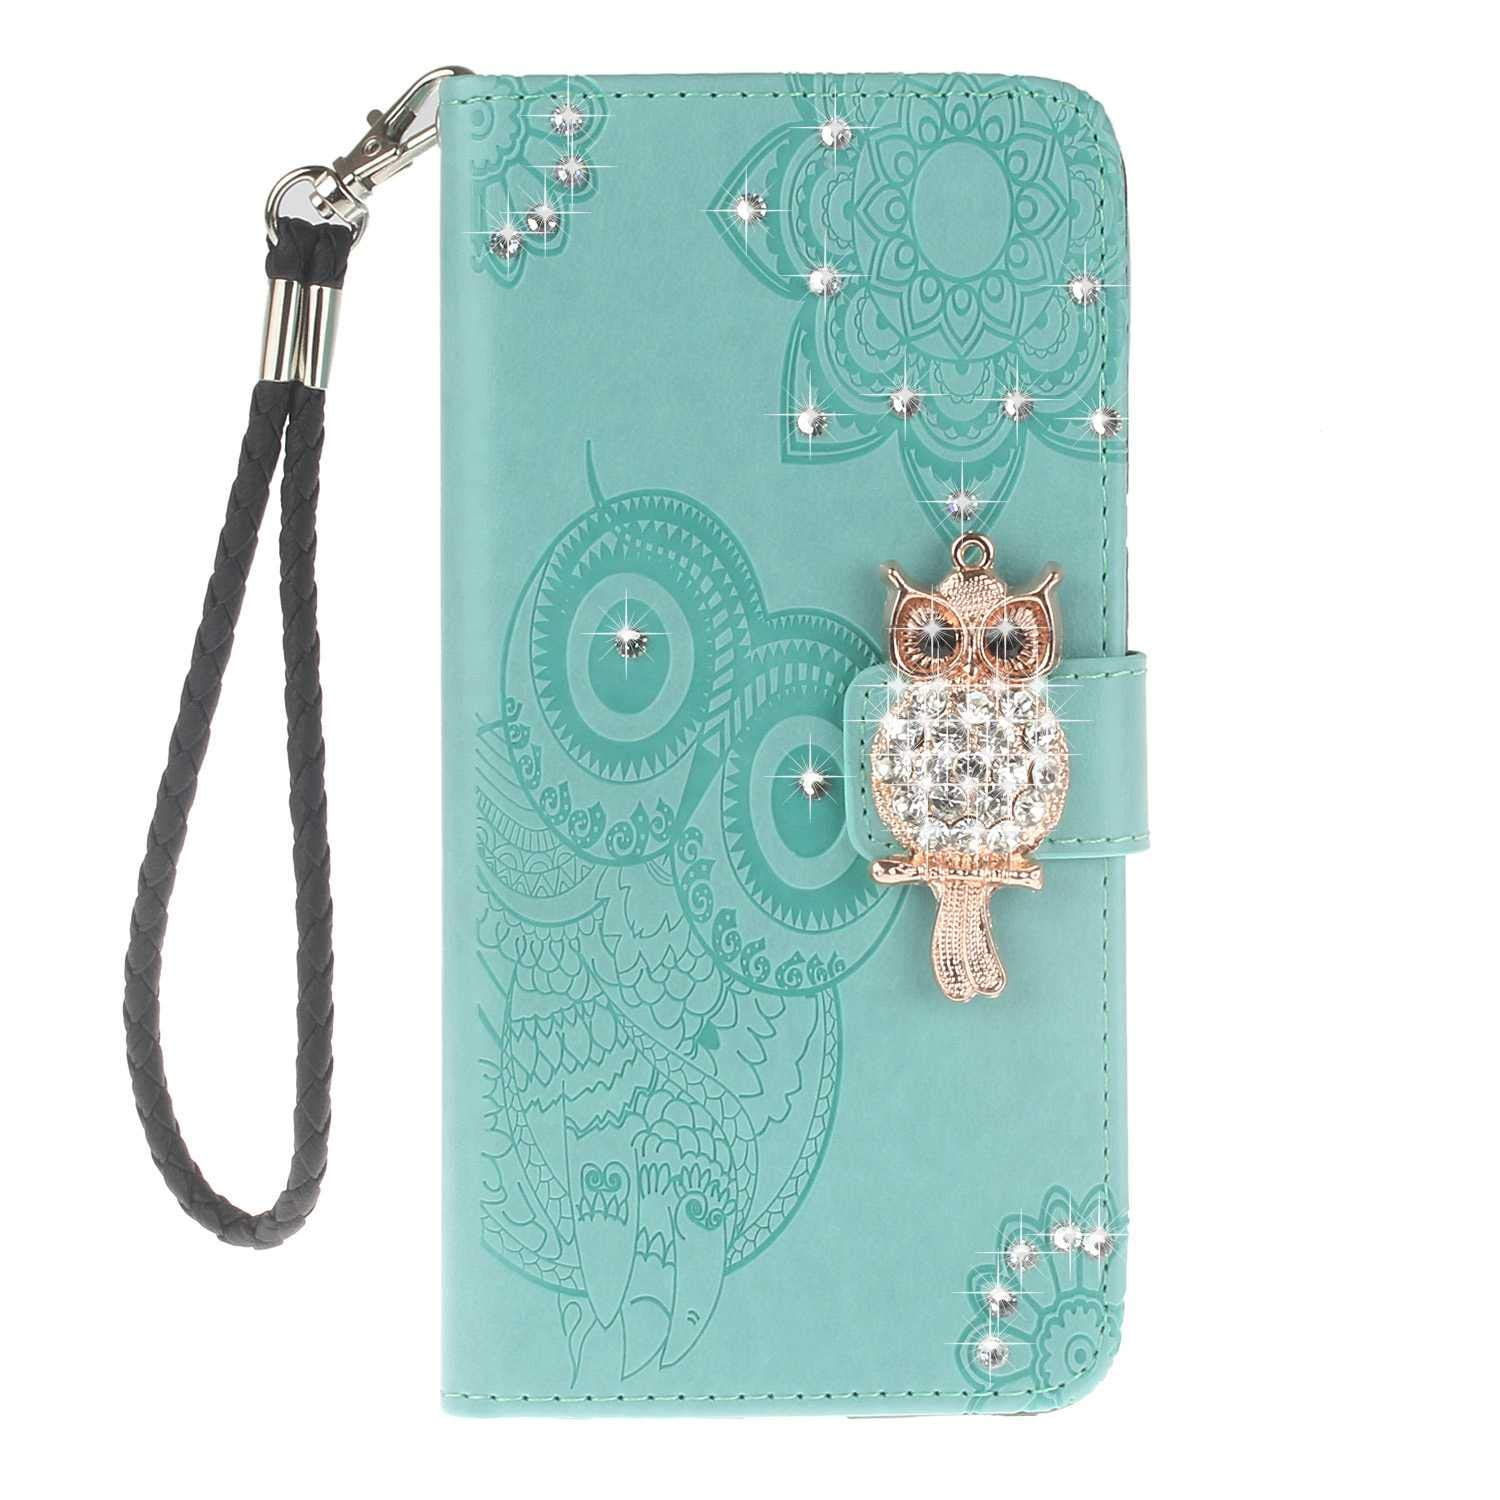 Bear Village Sony Xperia XZ2 Case, Leather Case with Wrist Strap and Credit Card Slot, Owl Magnetic Closure Shockproof Cover for Sony Xperia XZ2, Green by Bear Village